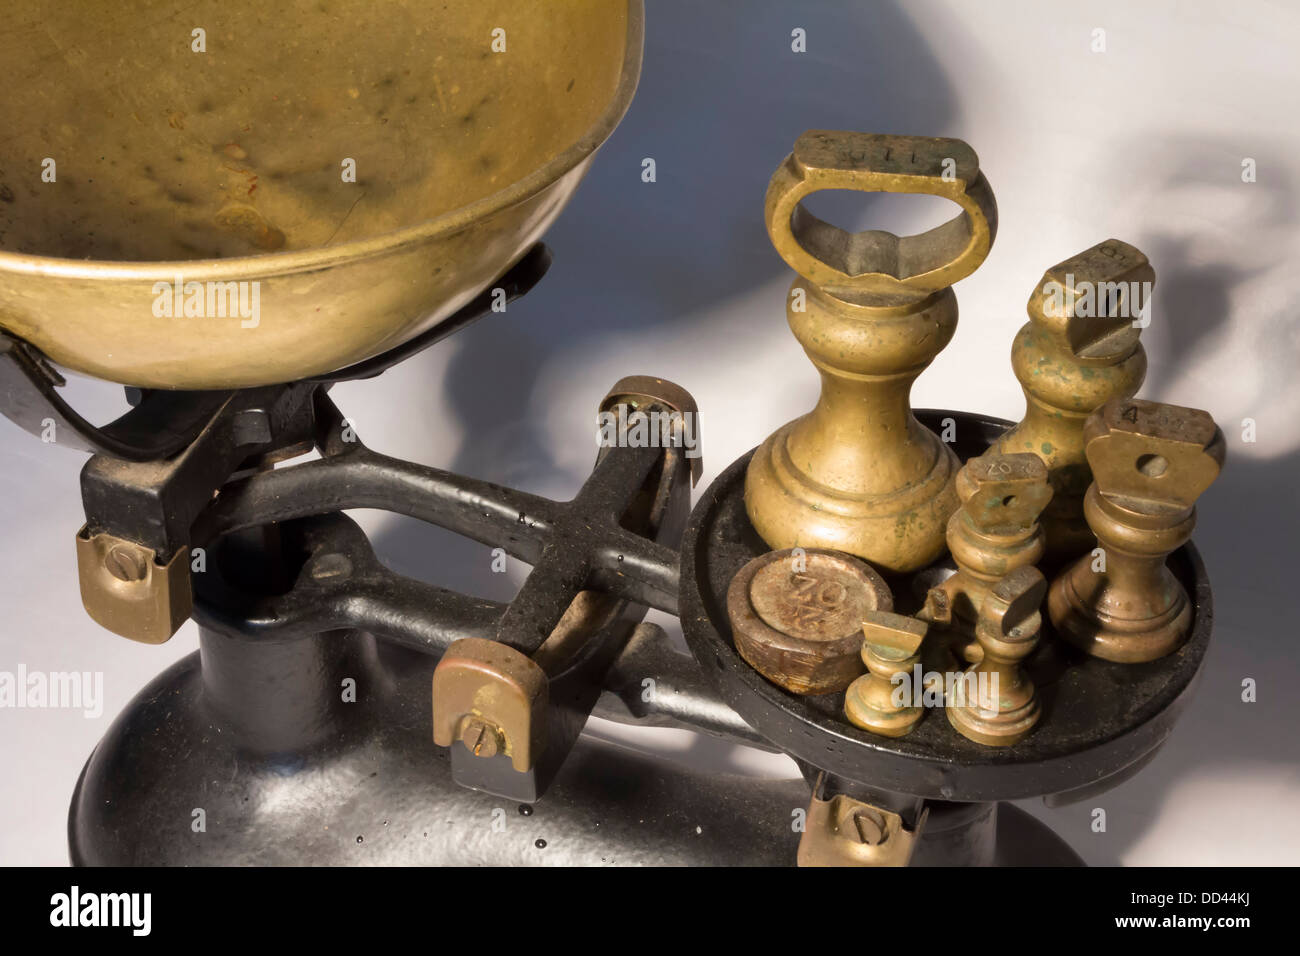 Close-up of kitchen weighing scales Stock Photo